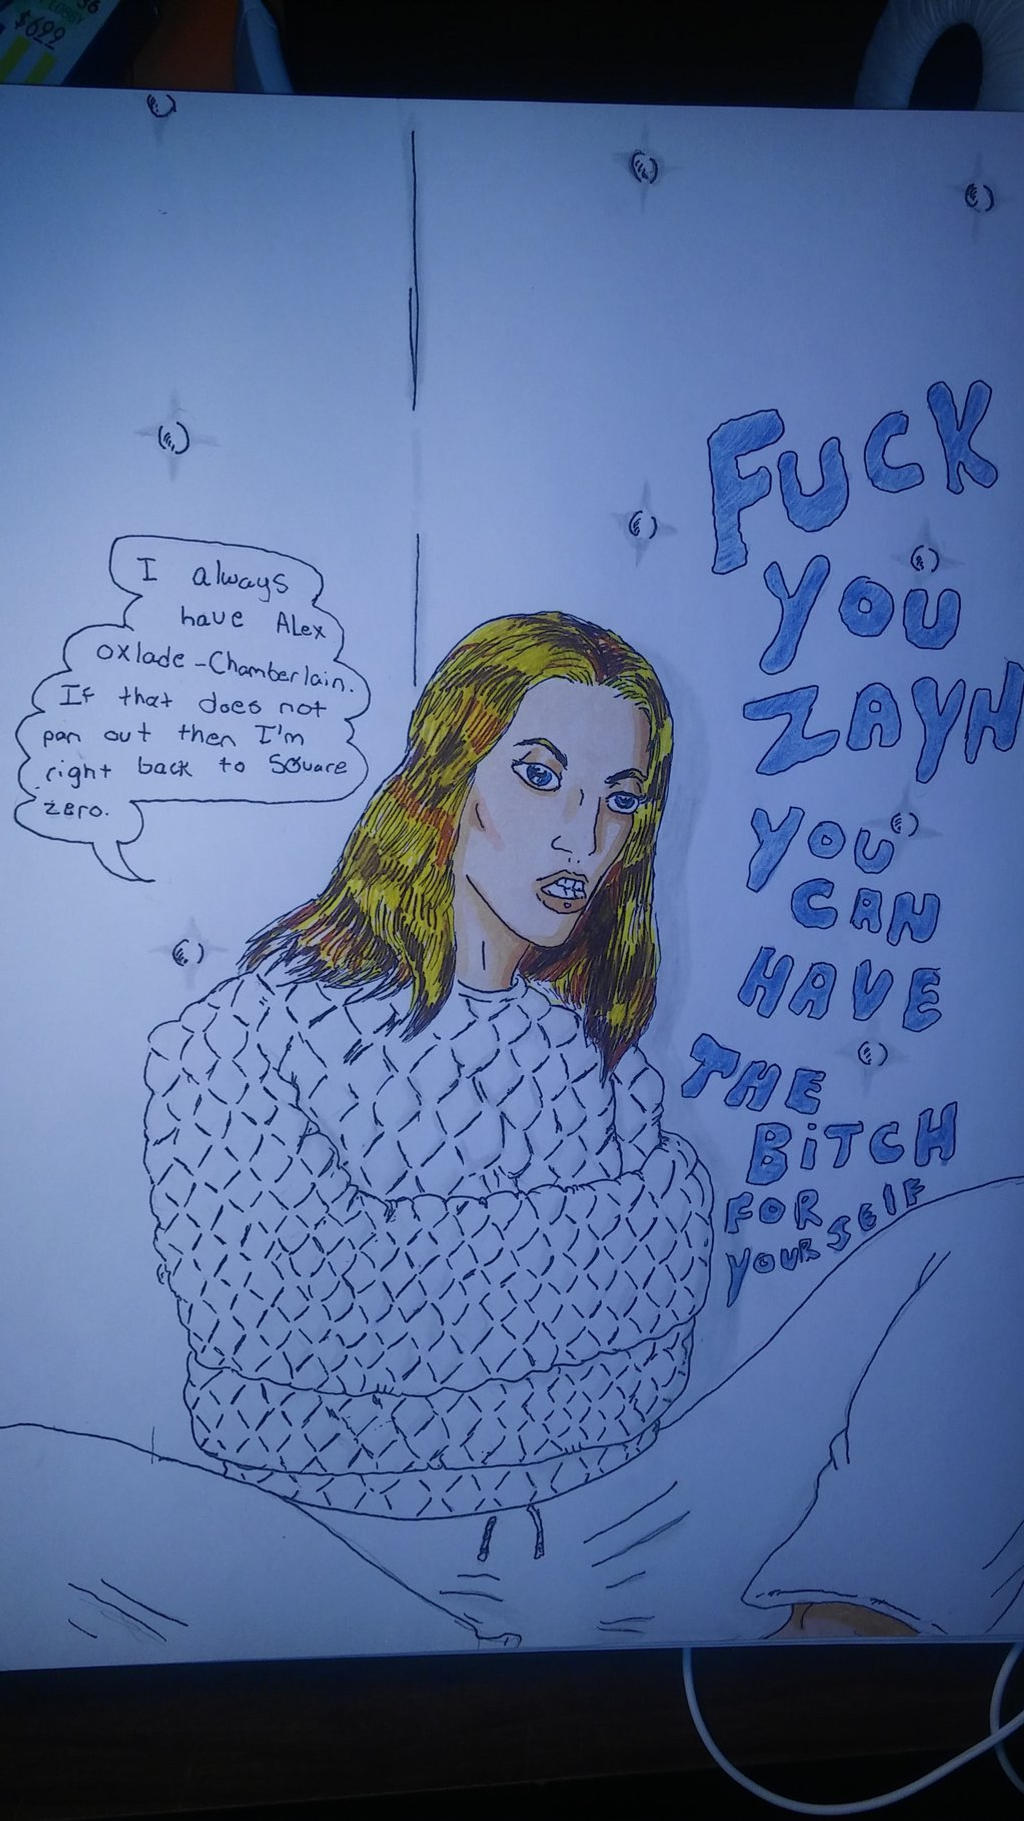 Perrie Edwards Straight Jacket Confinement 5 By Sungodcomics On Deviantart